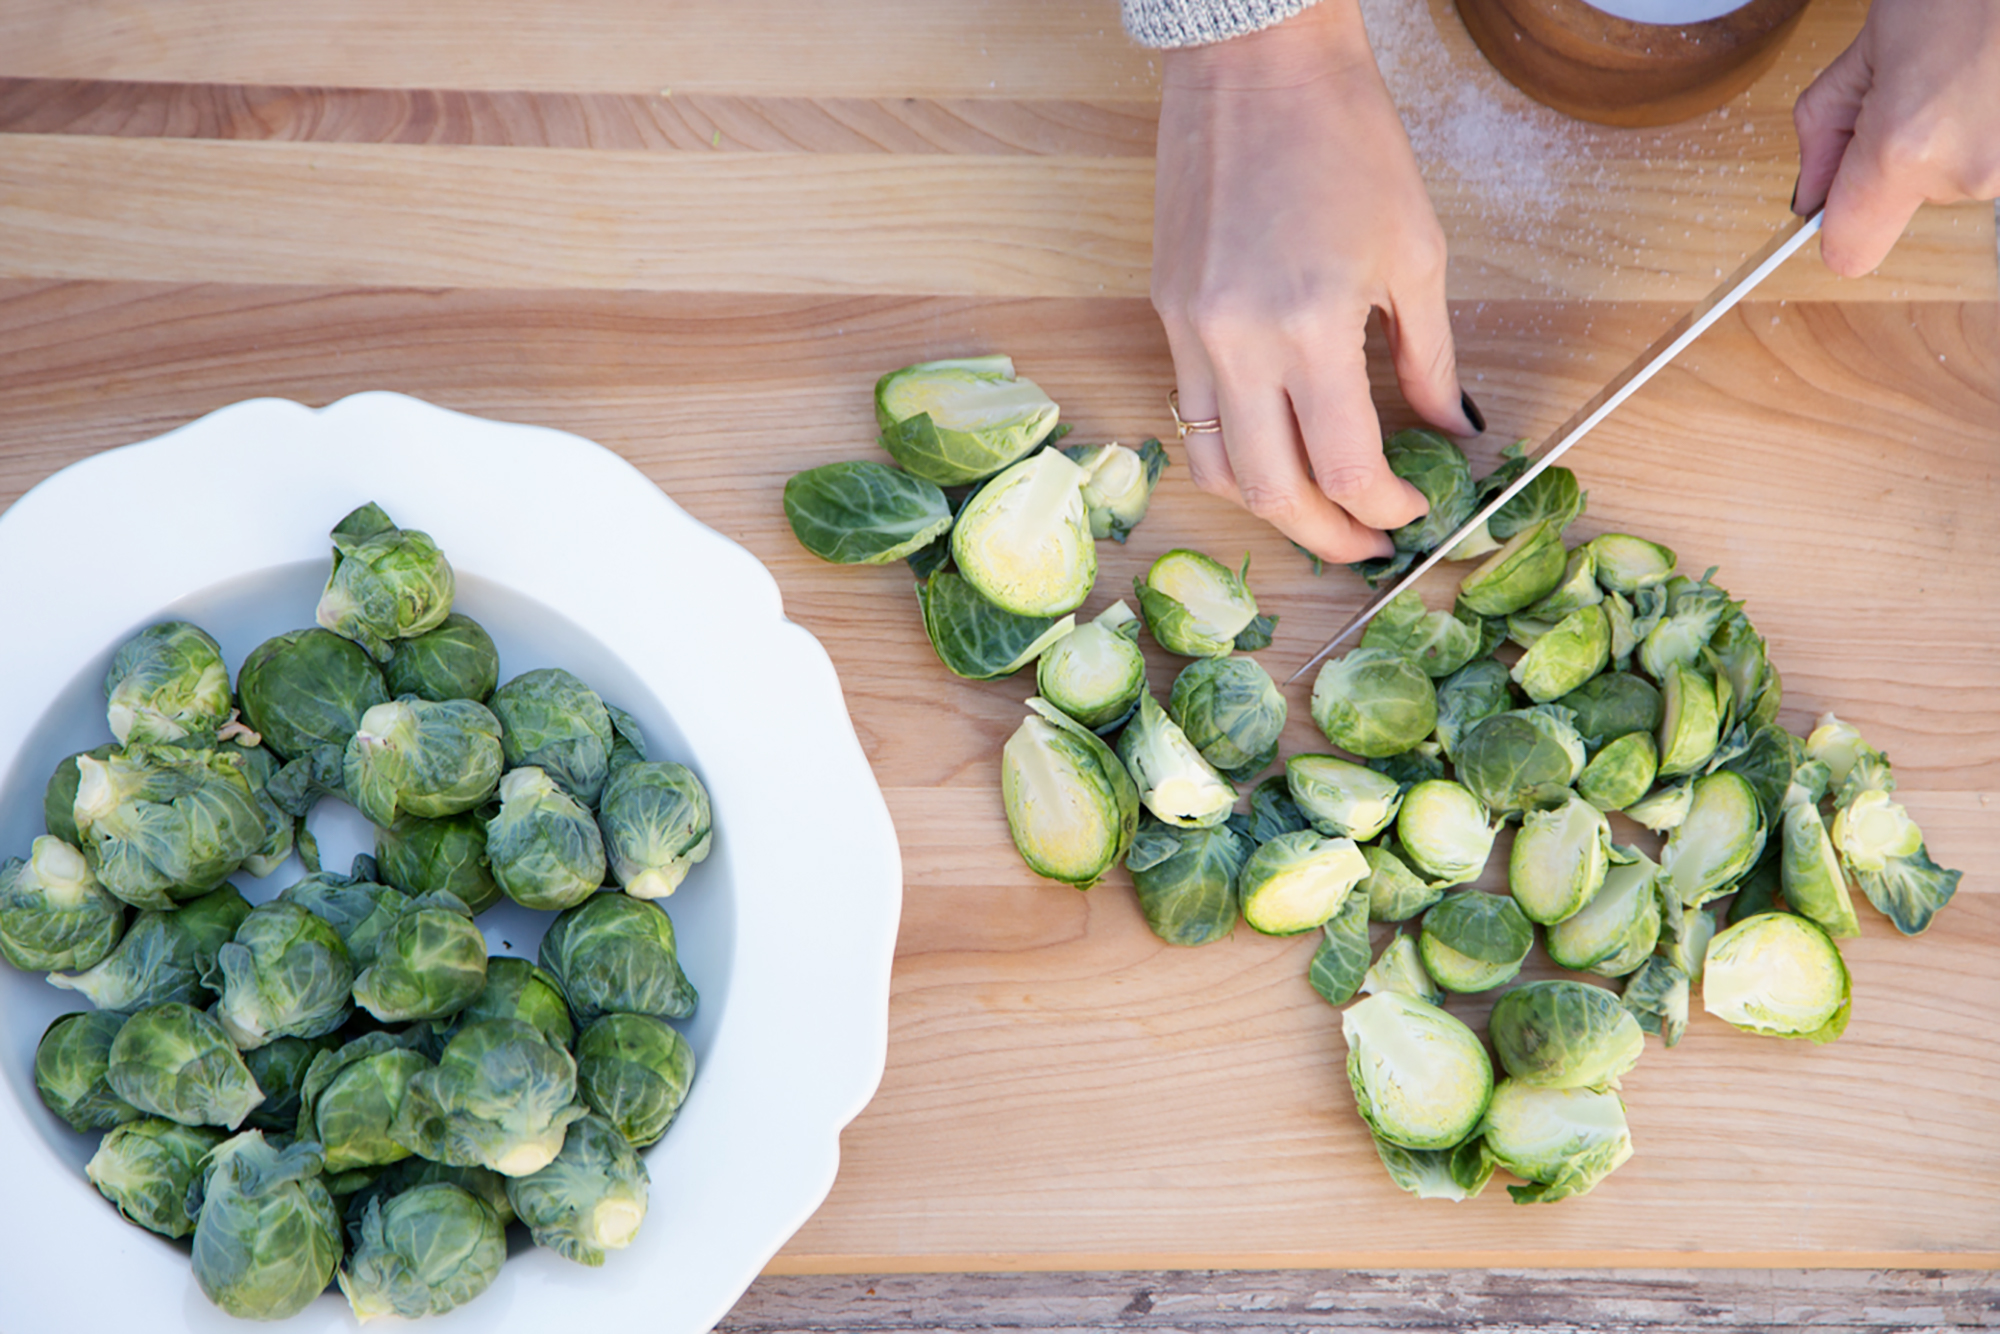 jo-torrijos-states-of-reverie-simple-brussels-sprouts-recipe-13.jpg